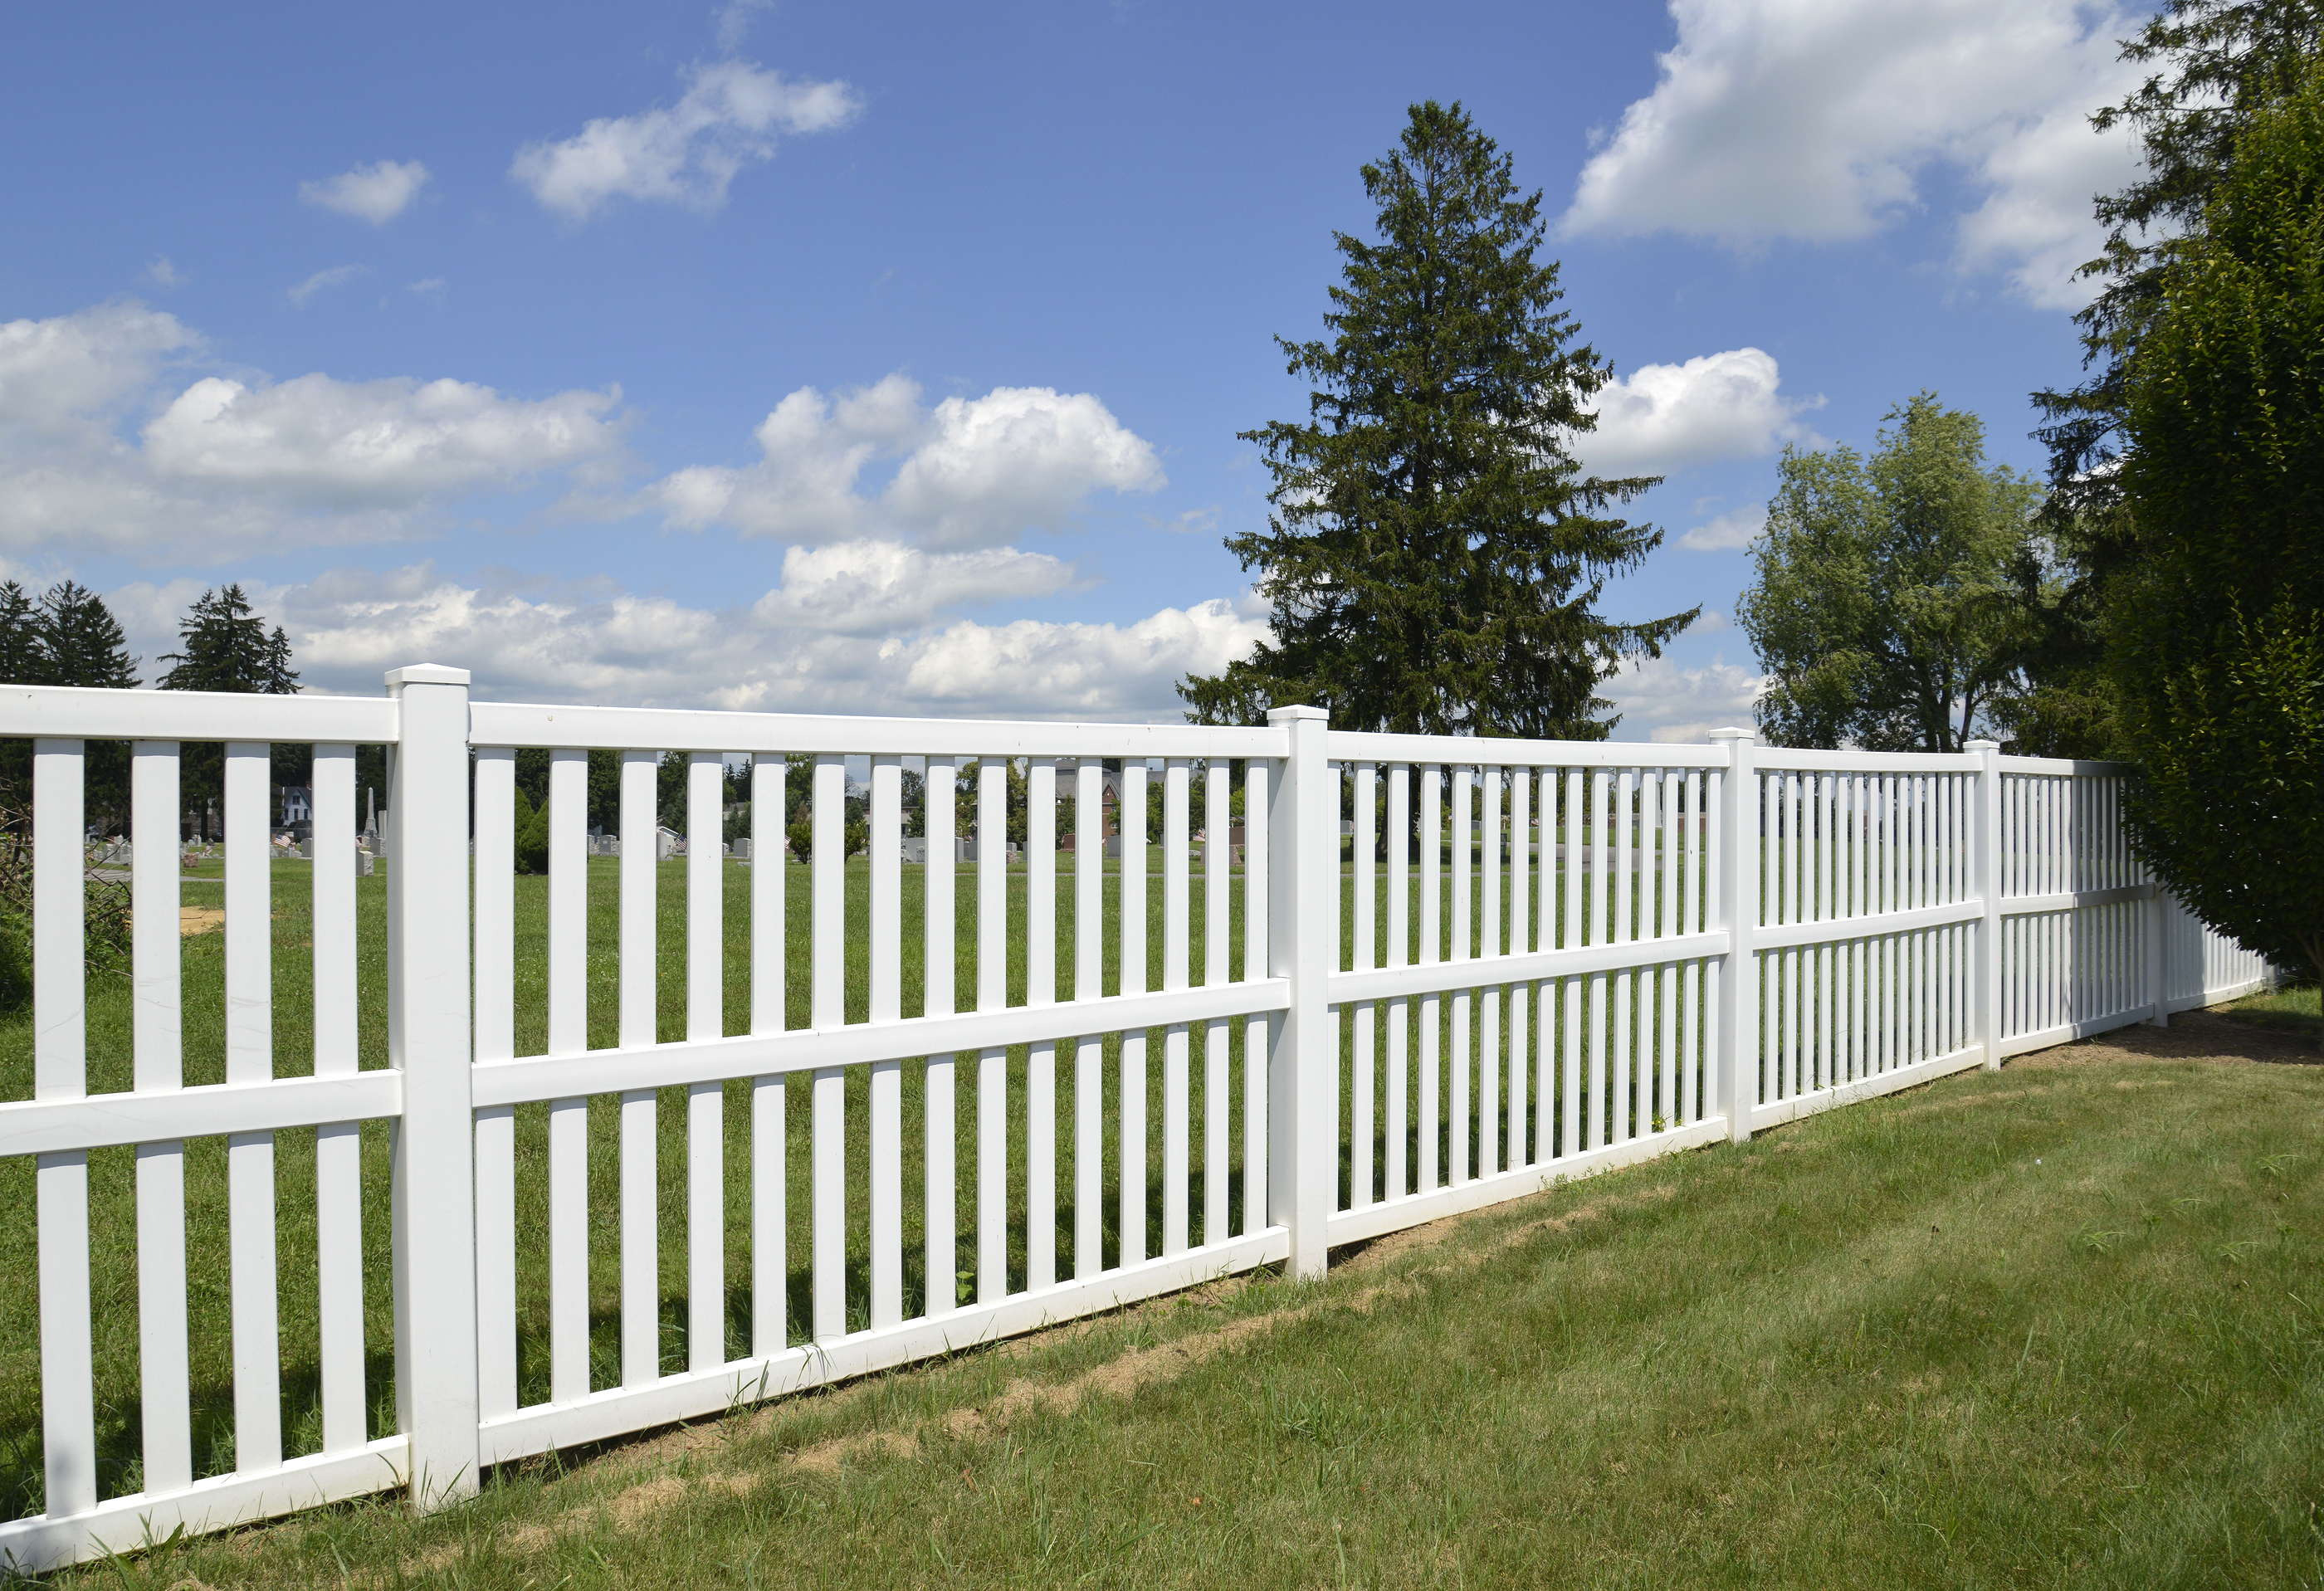 White Vinyl Fence By Green Lawn.jpg